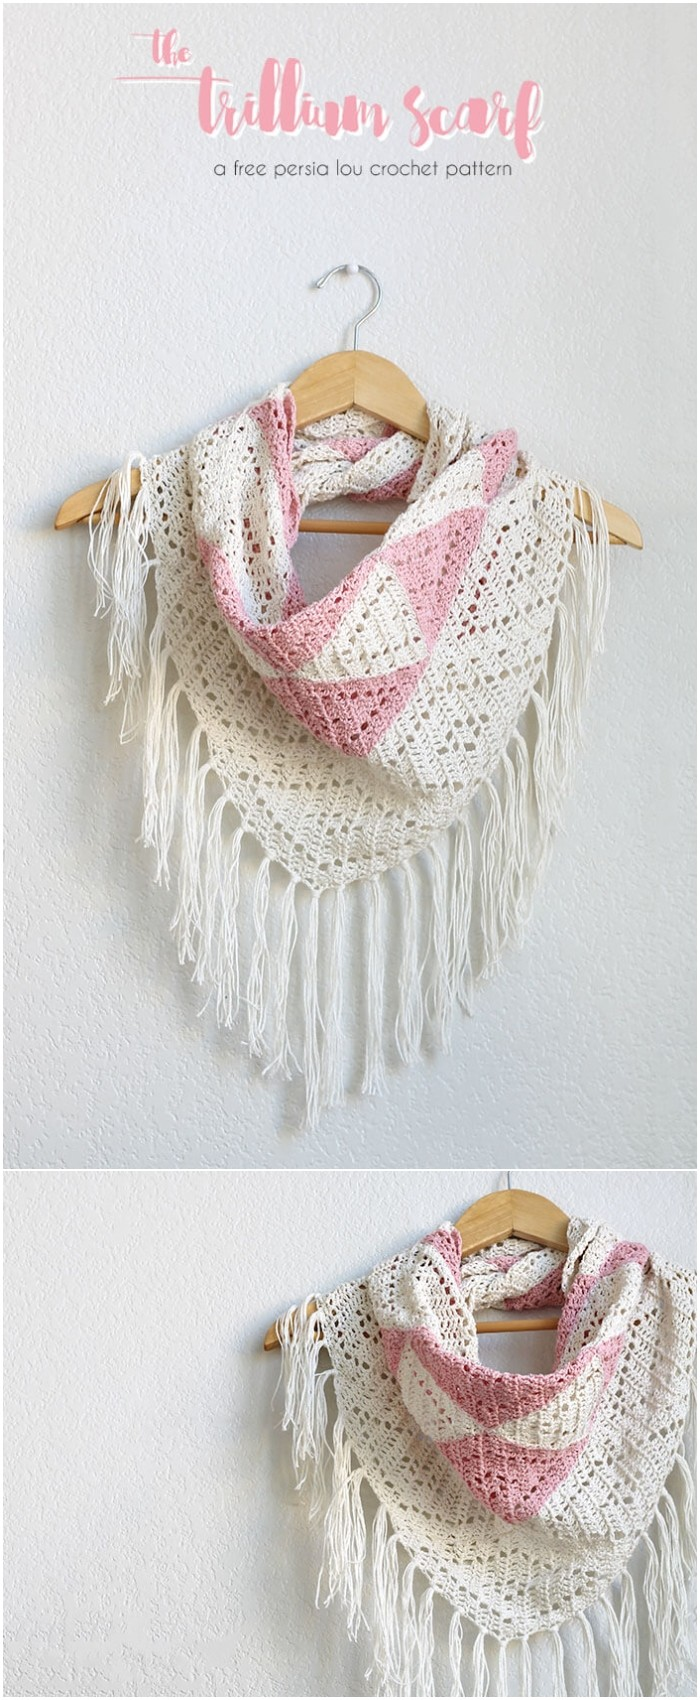 Geometric Triangle Crochet Cowl Scarf Pattern